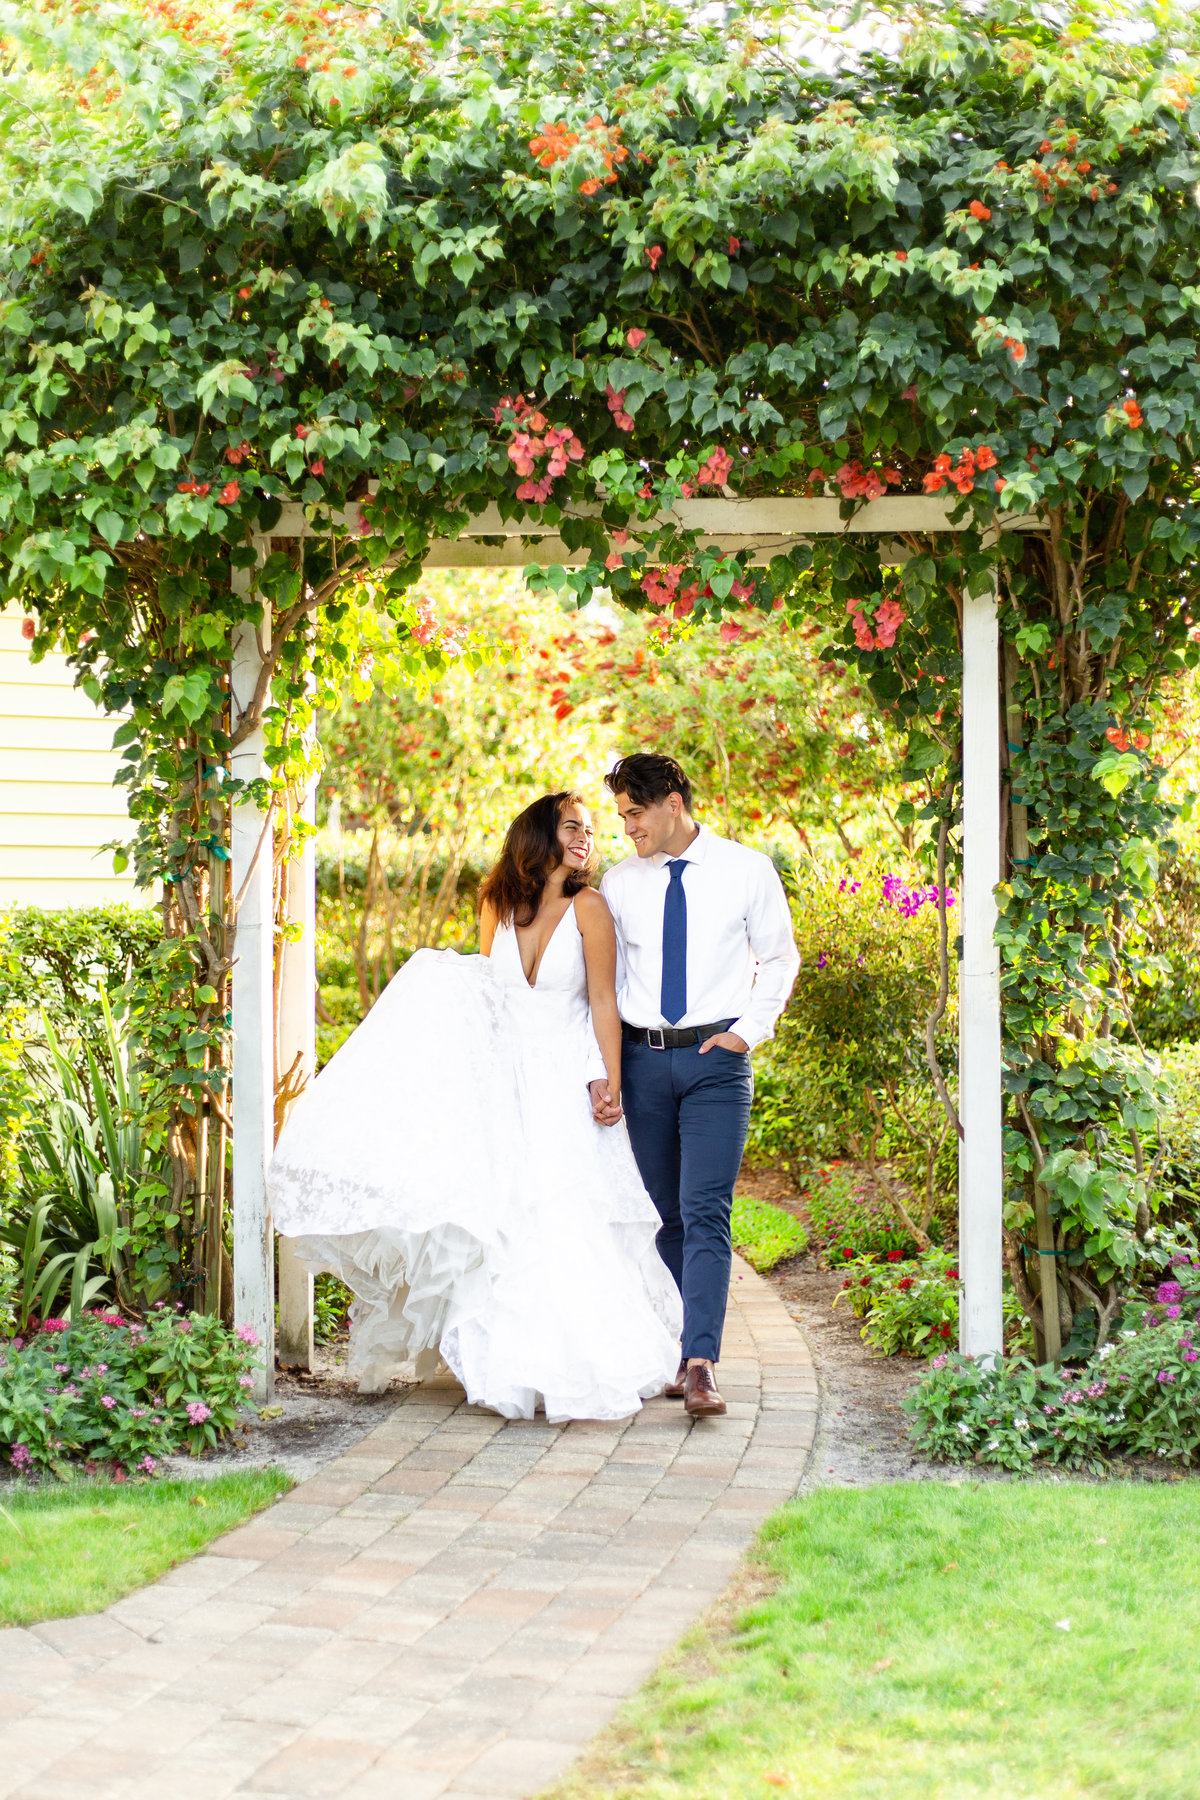 Bride and groom smile at each other as they walk hand in hand on their wedding day under an white arch in a garden wedding venue in Orlando, Florida